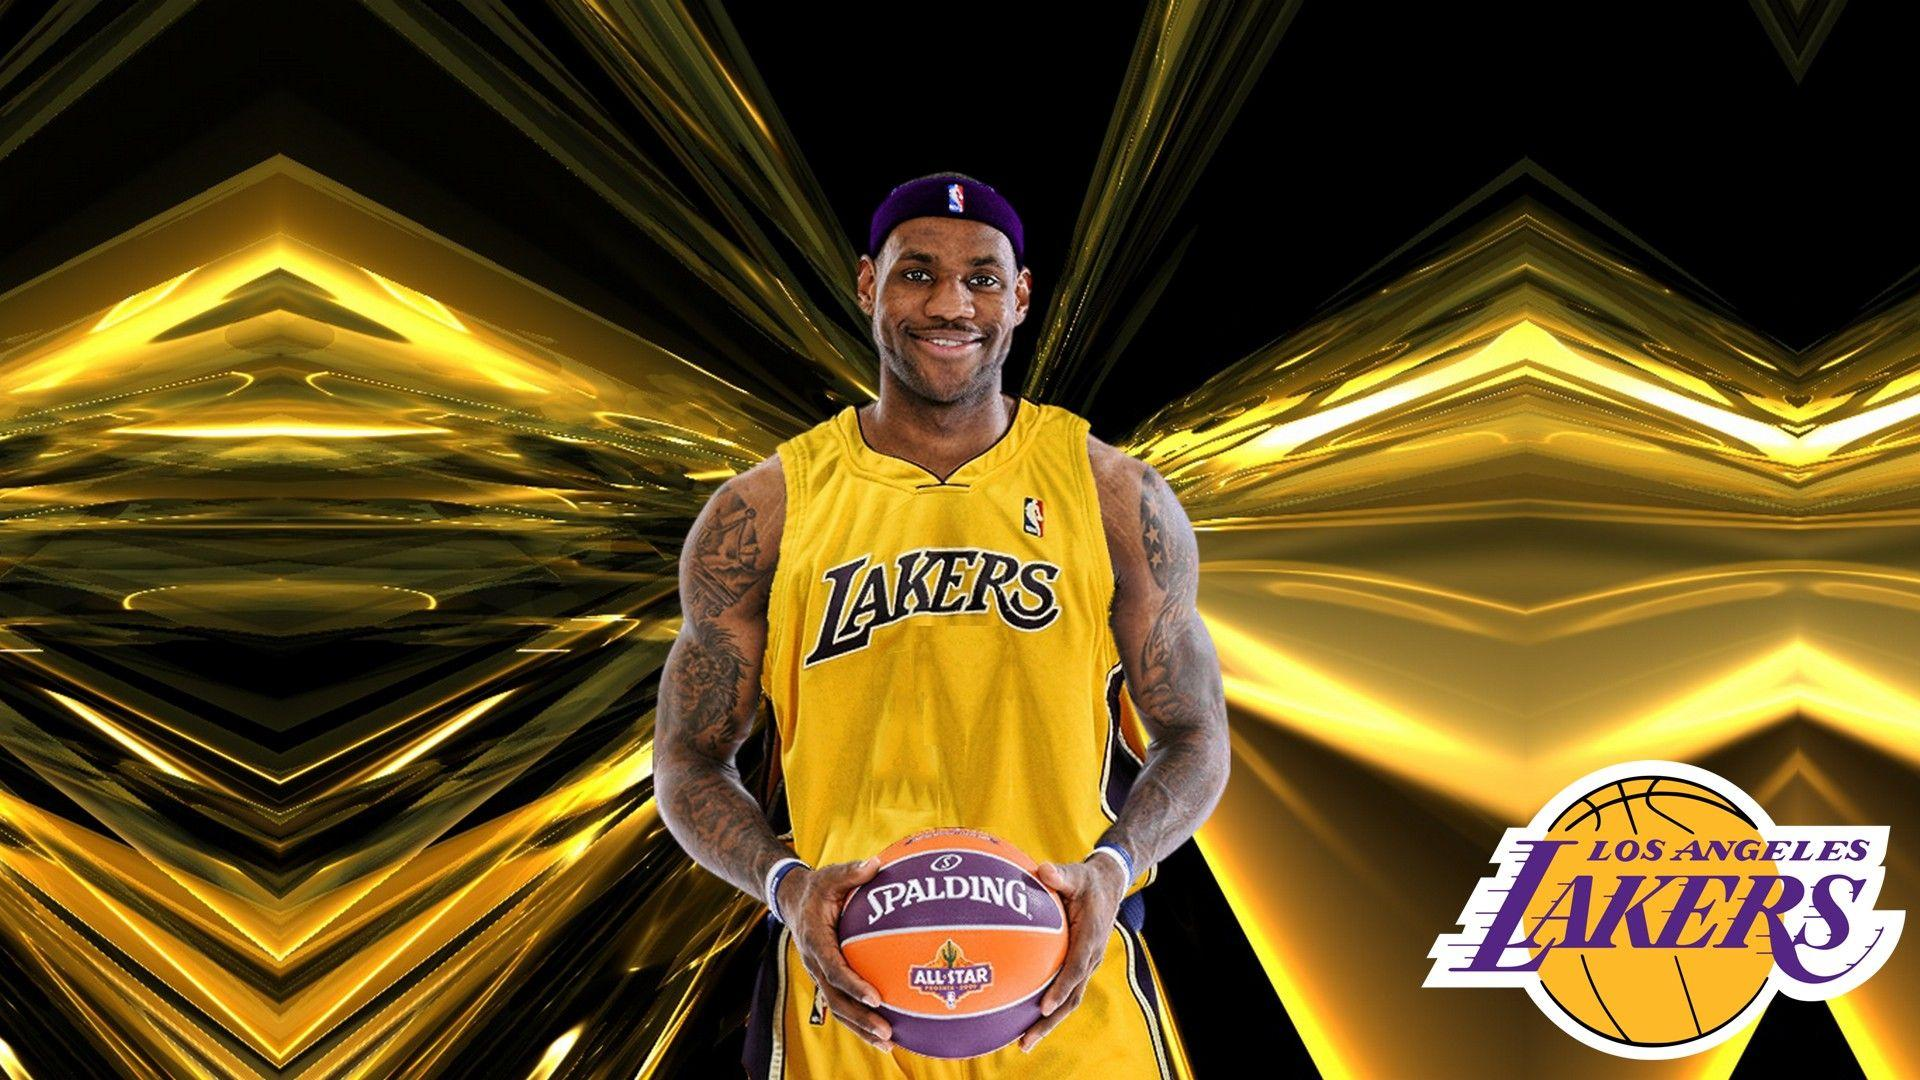 Lebron James Angeles Lakers Wallpapers - Wallpaper Cave